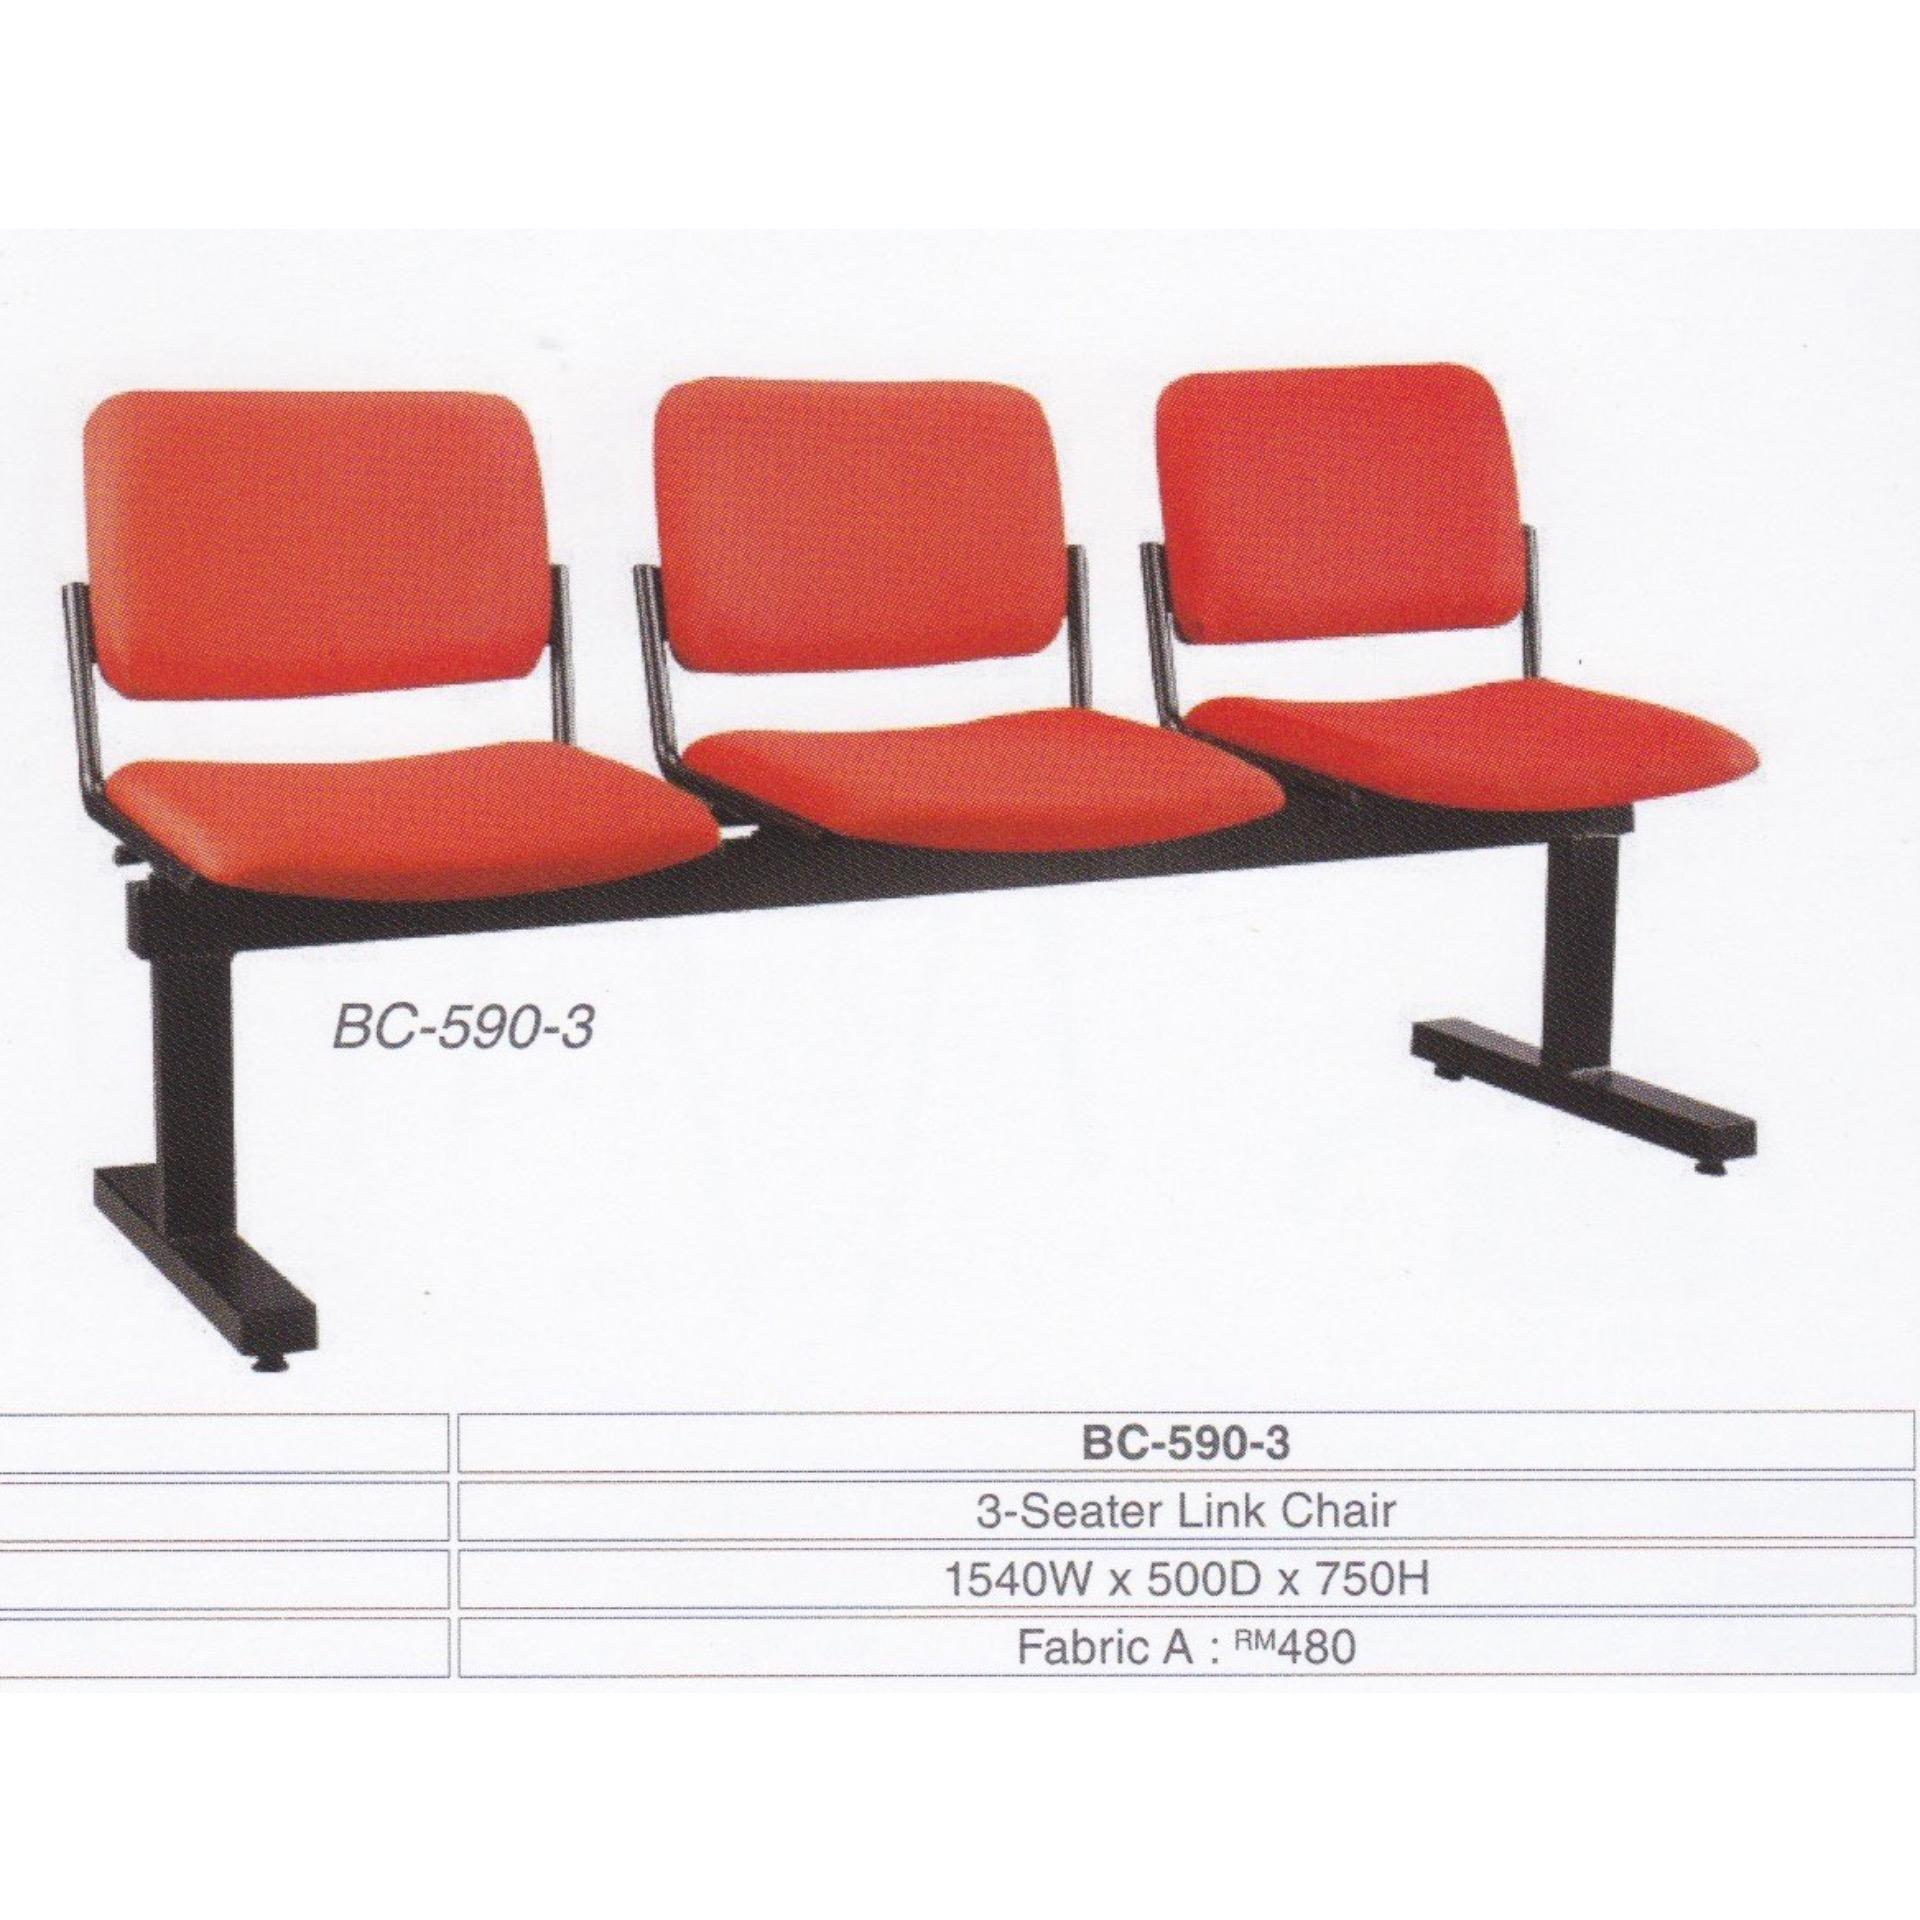 Surprising Deco Waiting Area 3 Seater Link Cushion Chair Hall Clinic Office Pabps2019 Chair Design Images Pabps2019Com